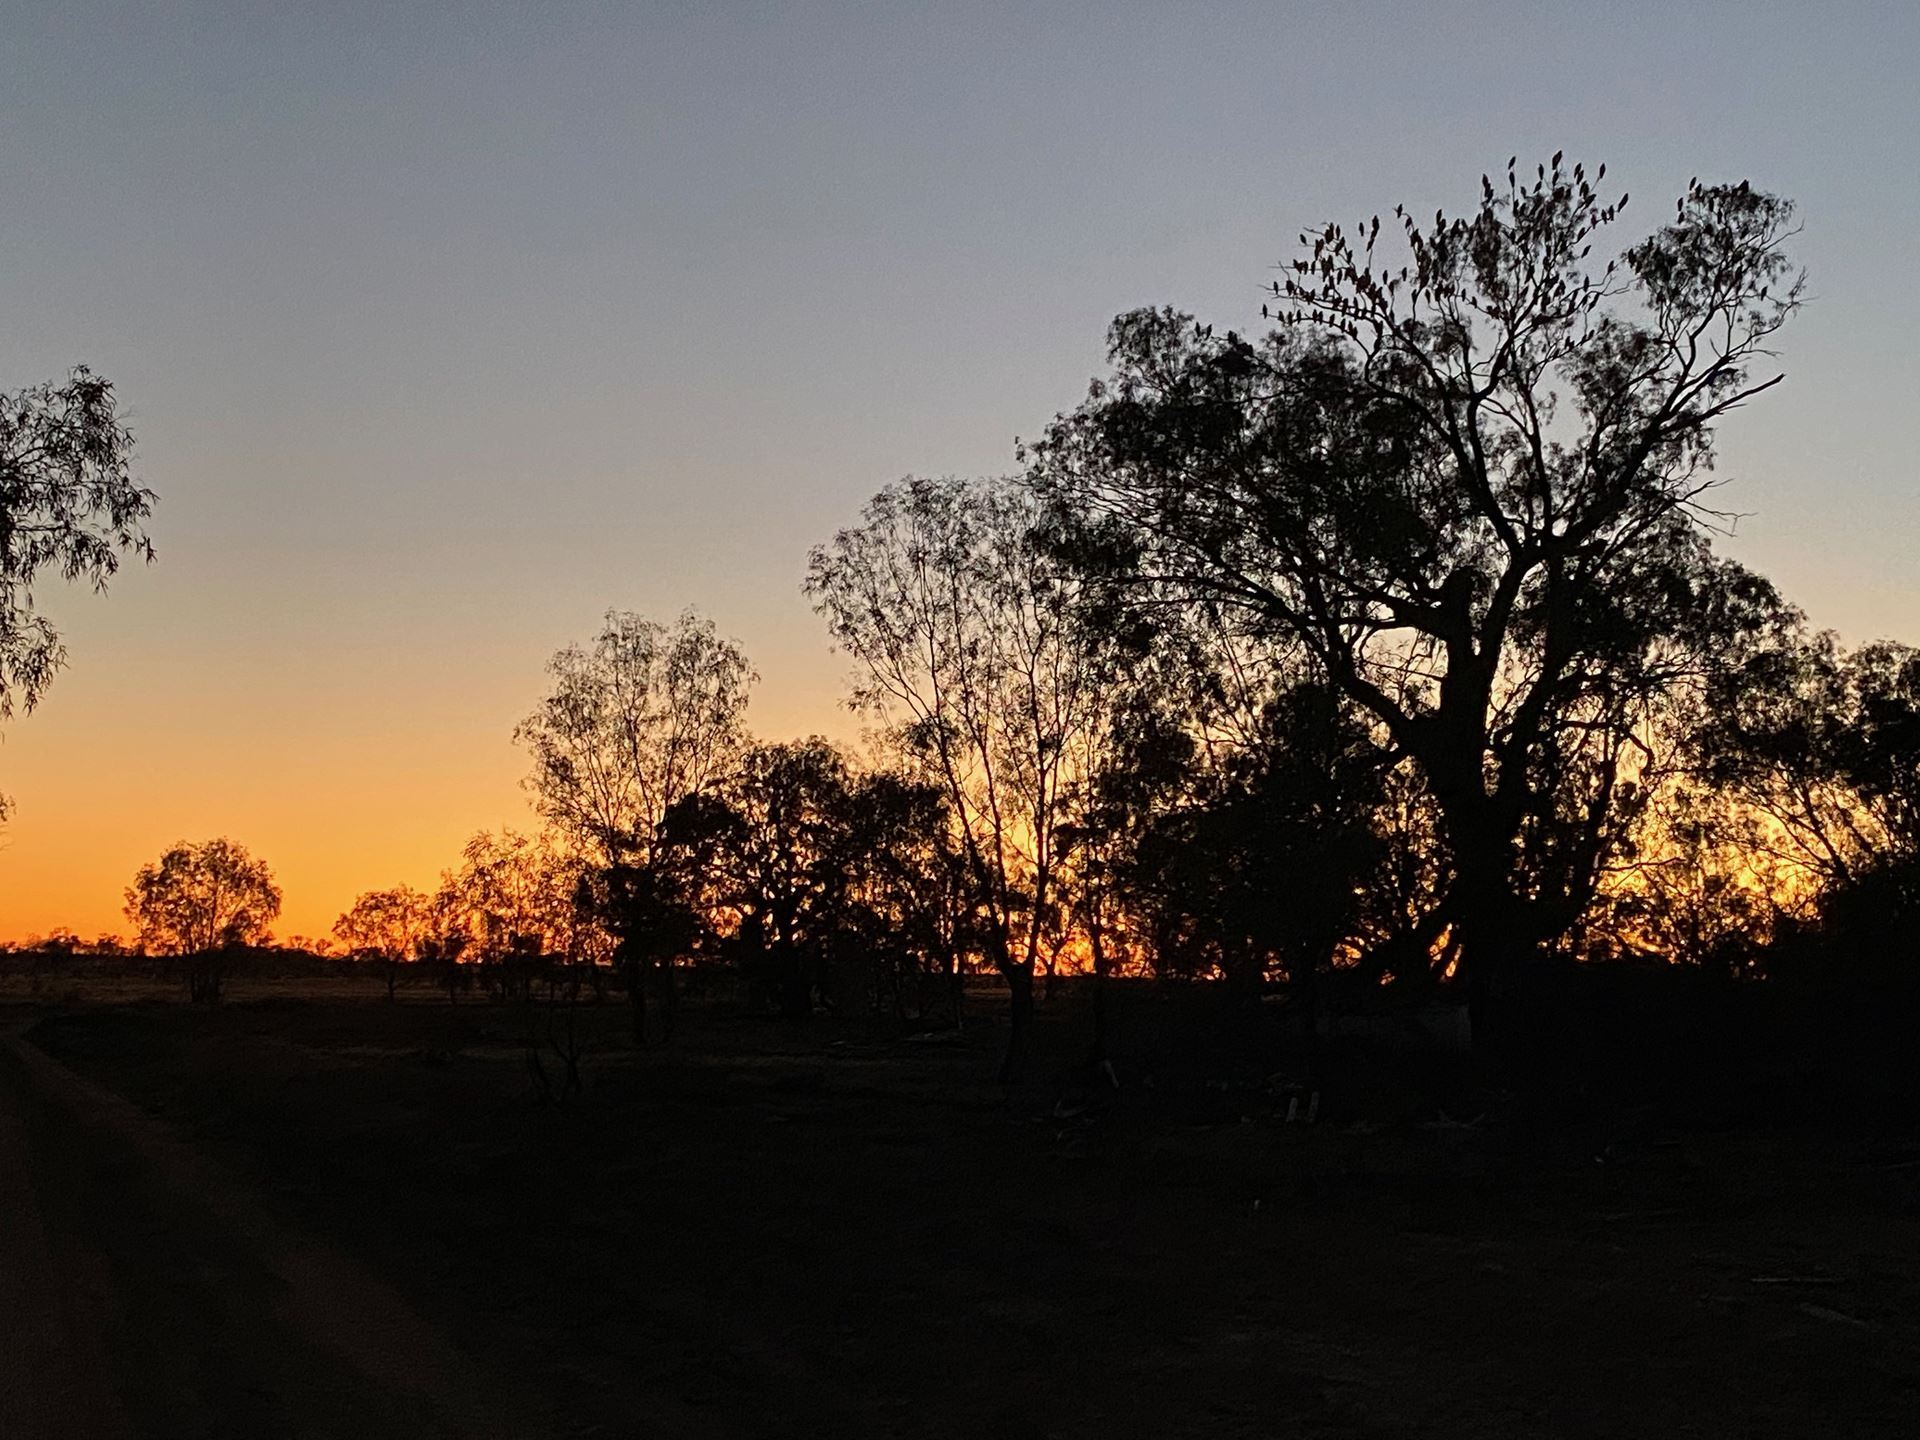 Sunrise on The Darling River